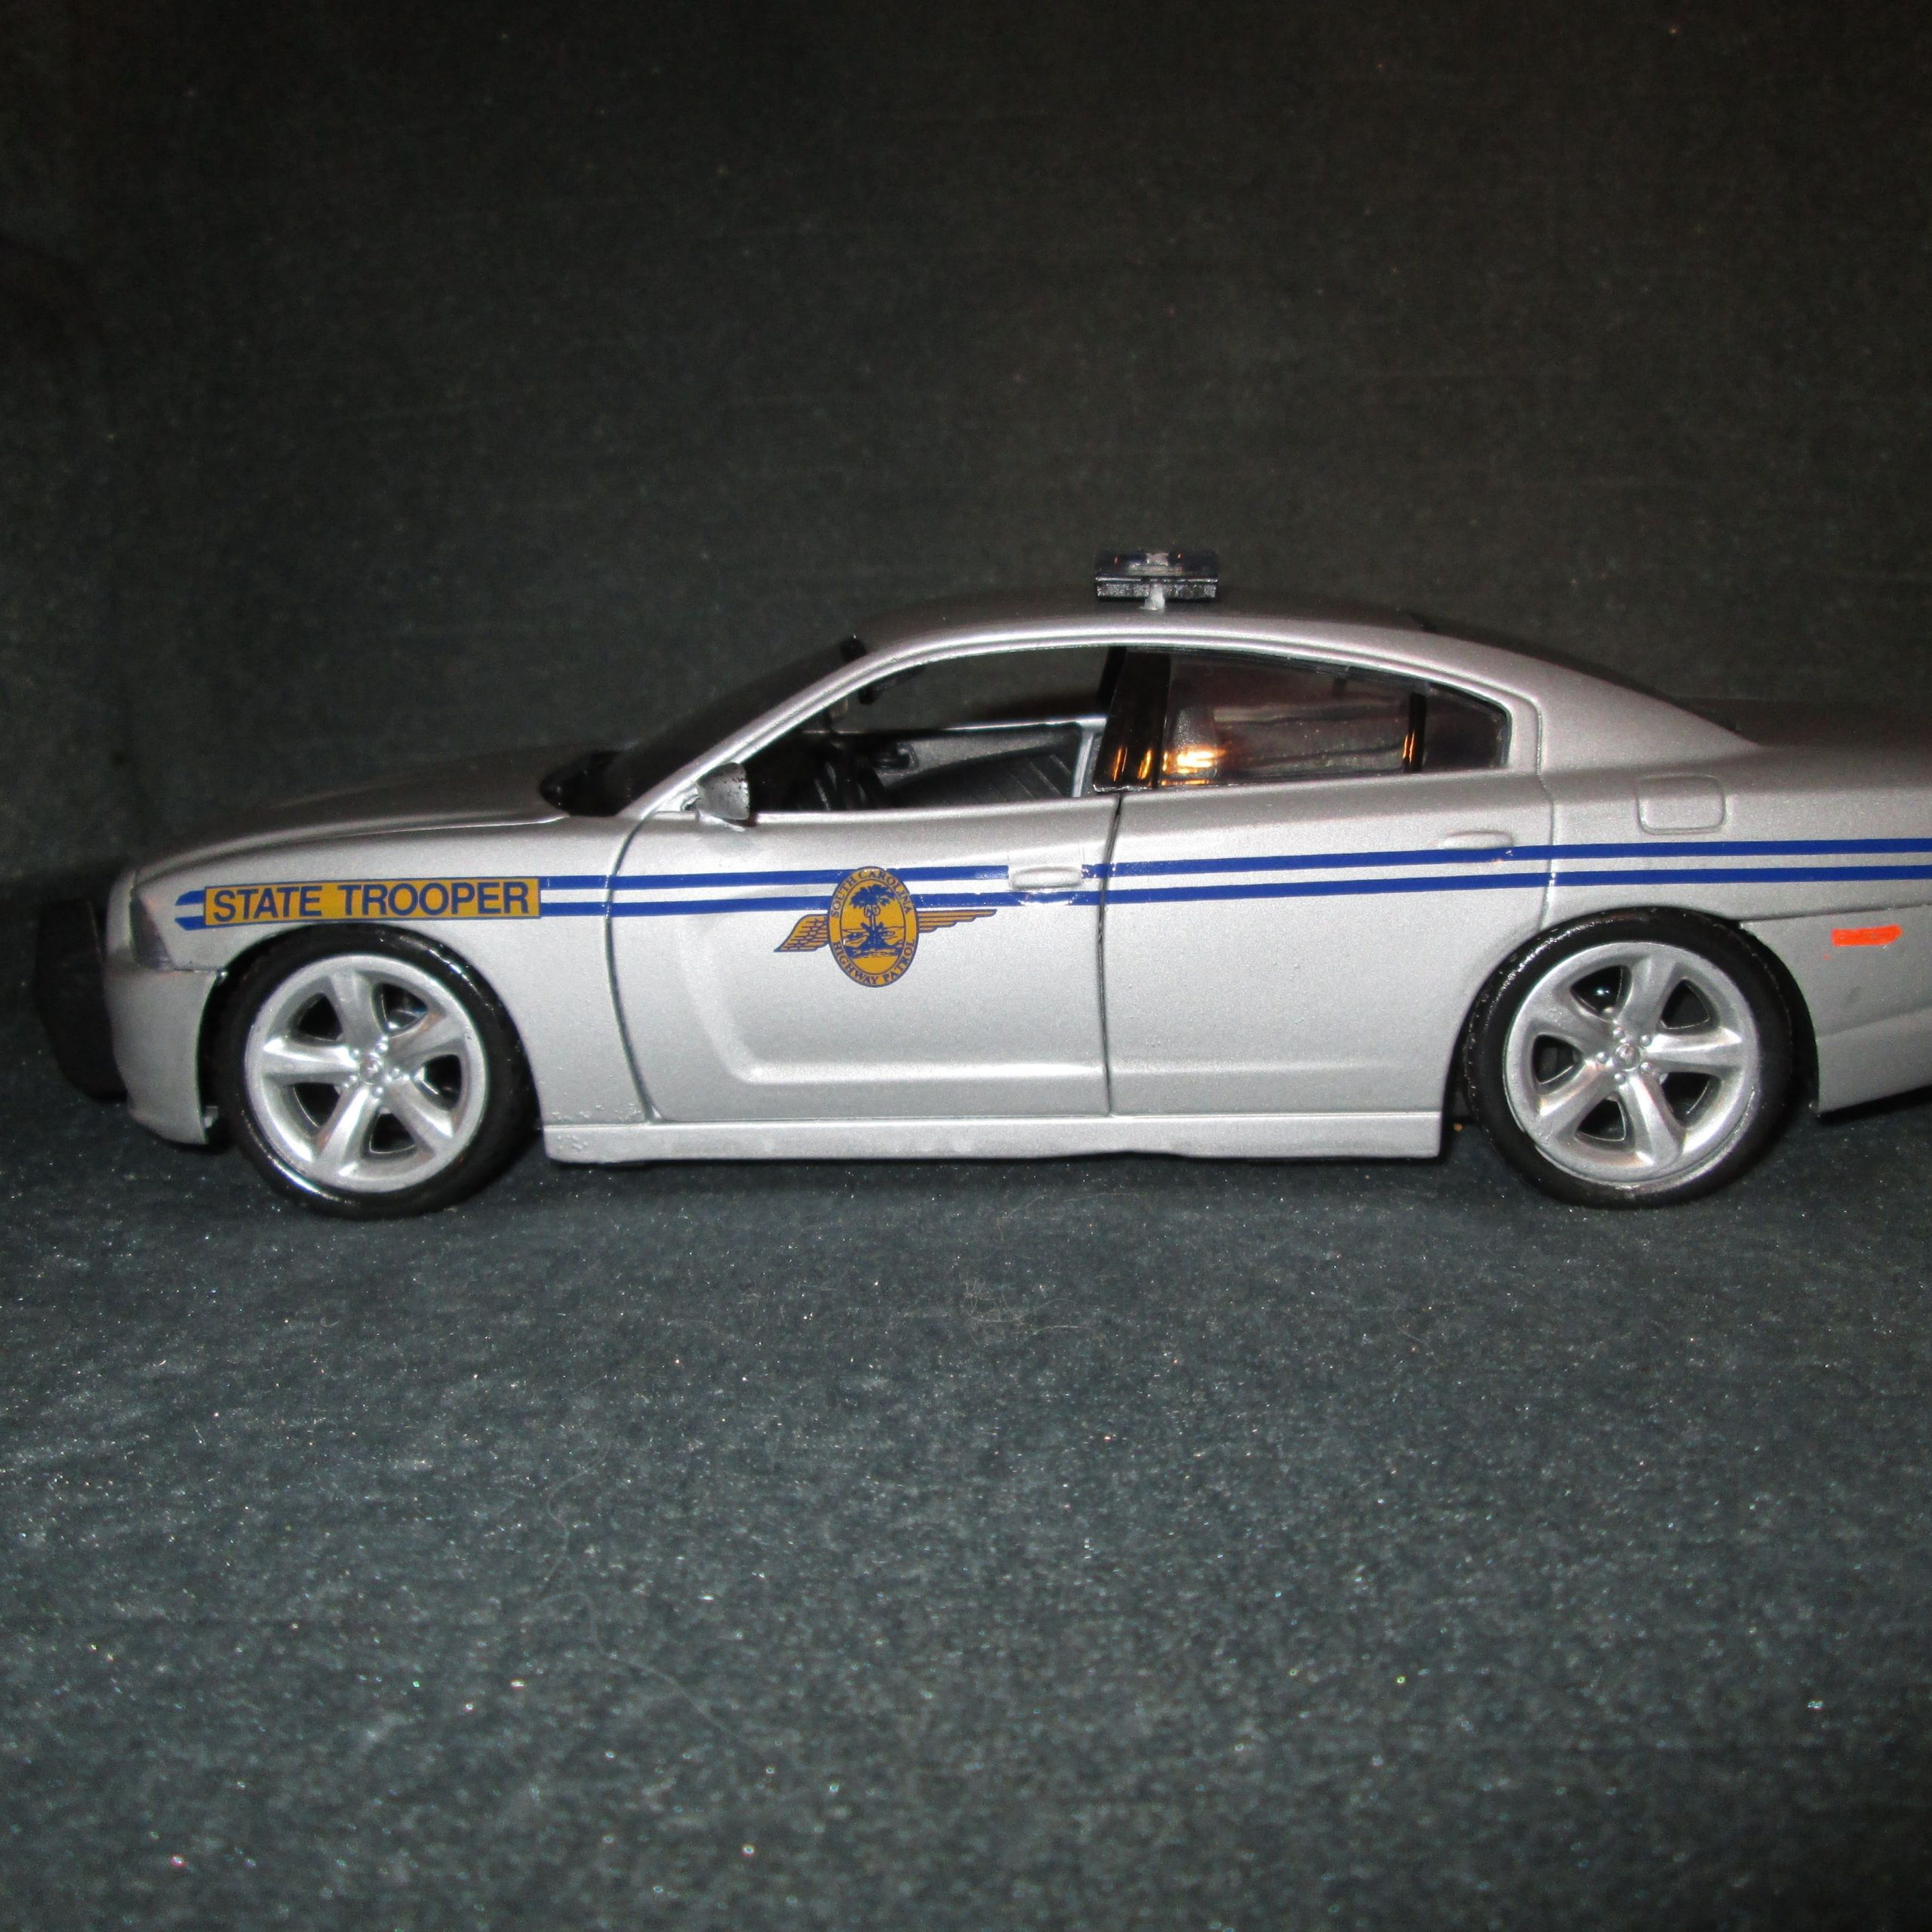 2014 Dodge Charger Unique 1 24 Scale south Carolina Highway Patrol 2014 Dodge Charger